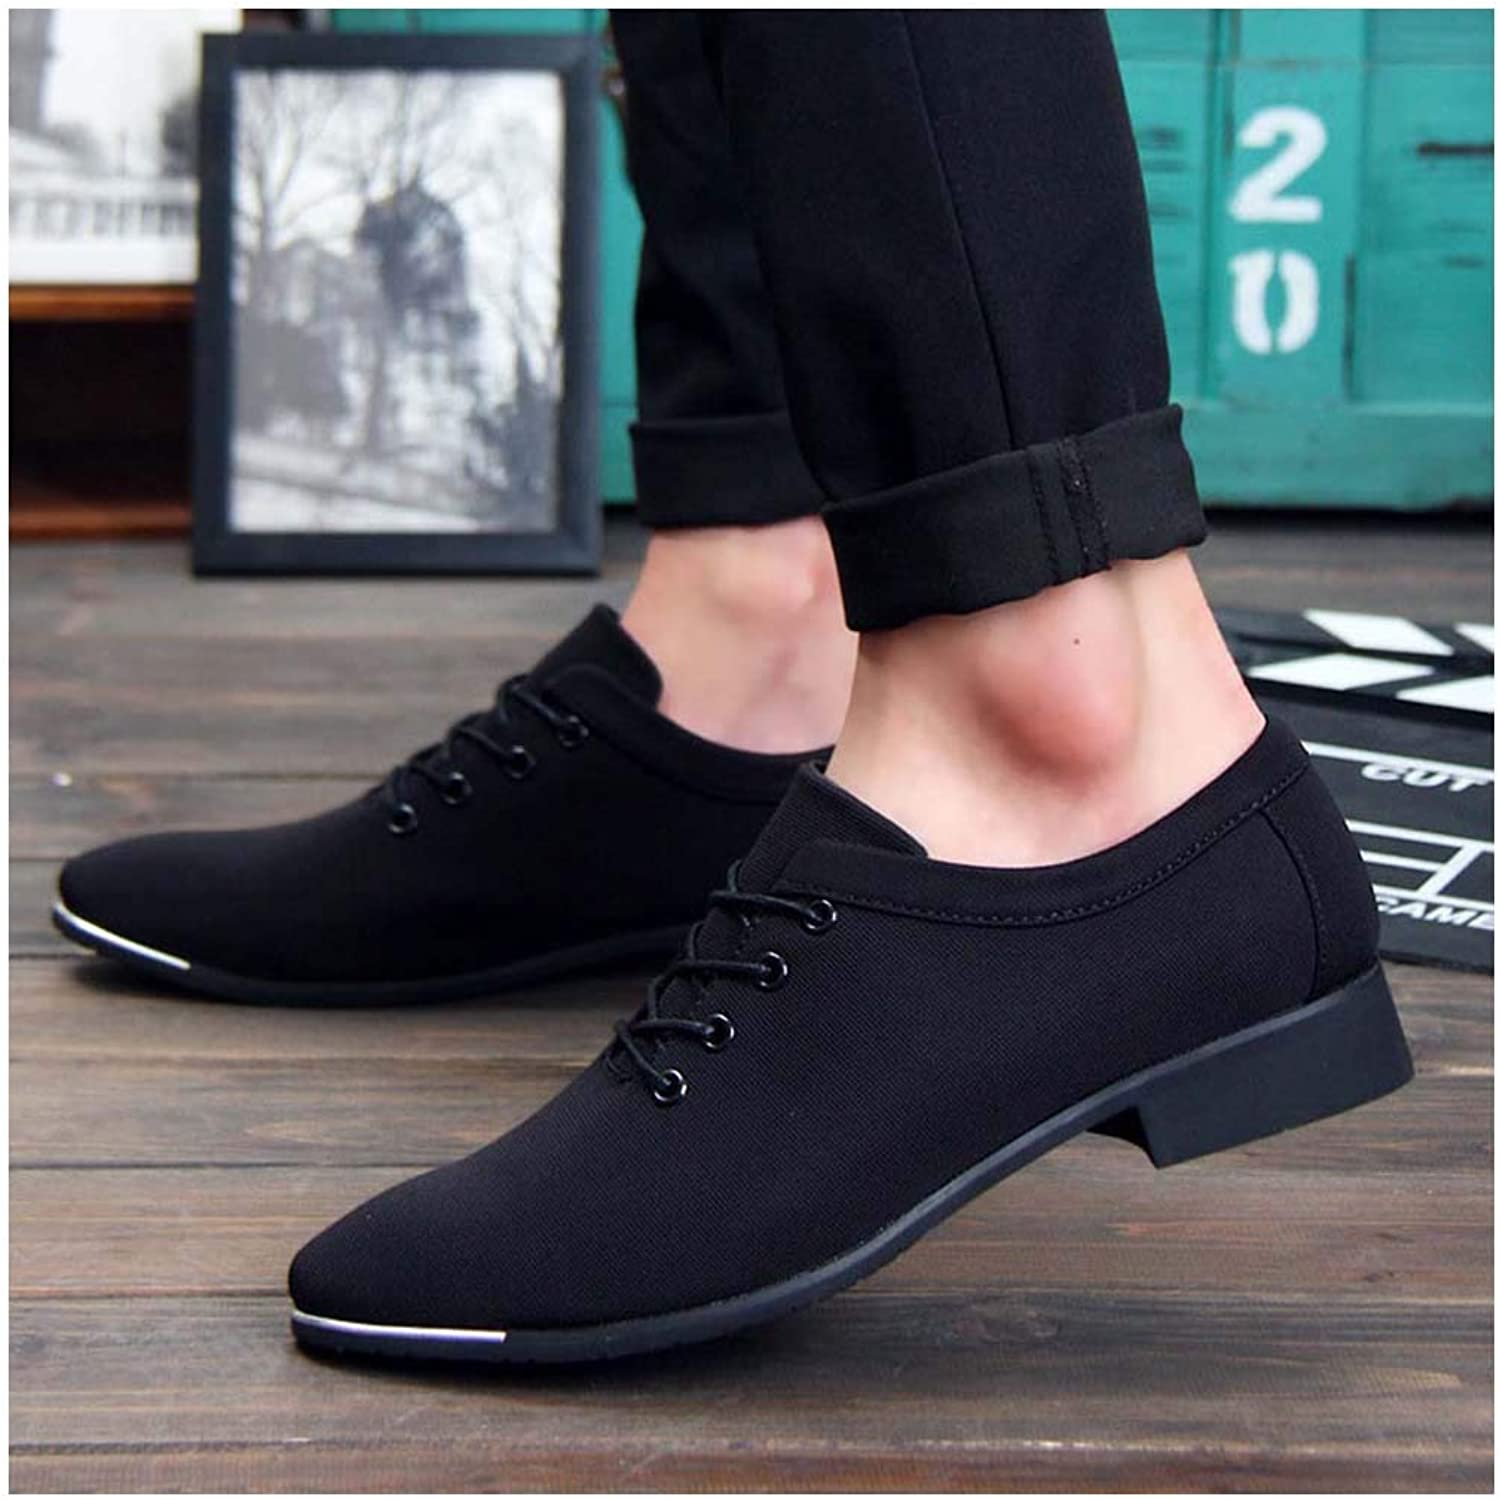 New Men Formal Wedding shoes Business Dress shoes Loafers Pointed Toe Big Size